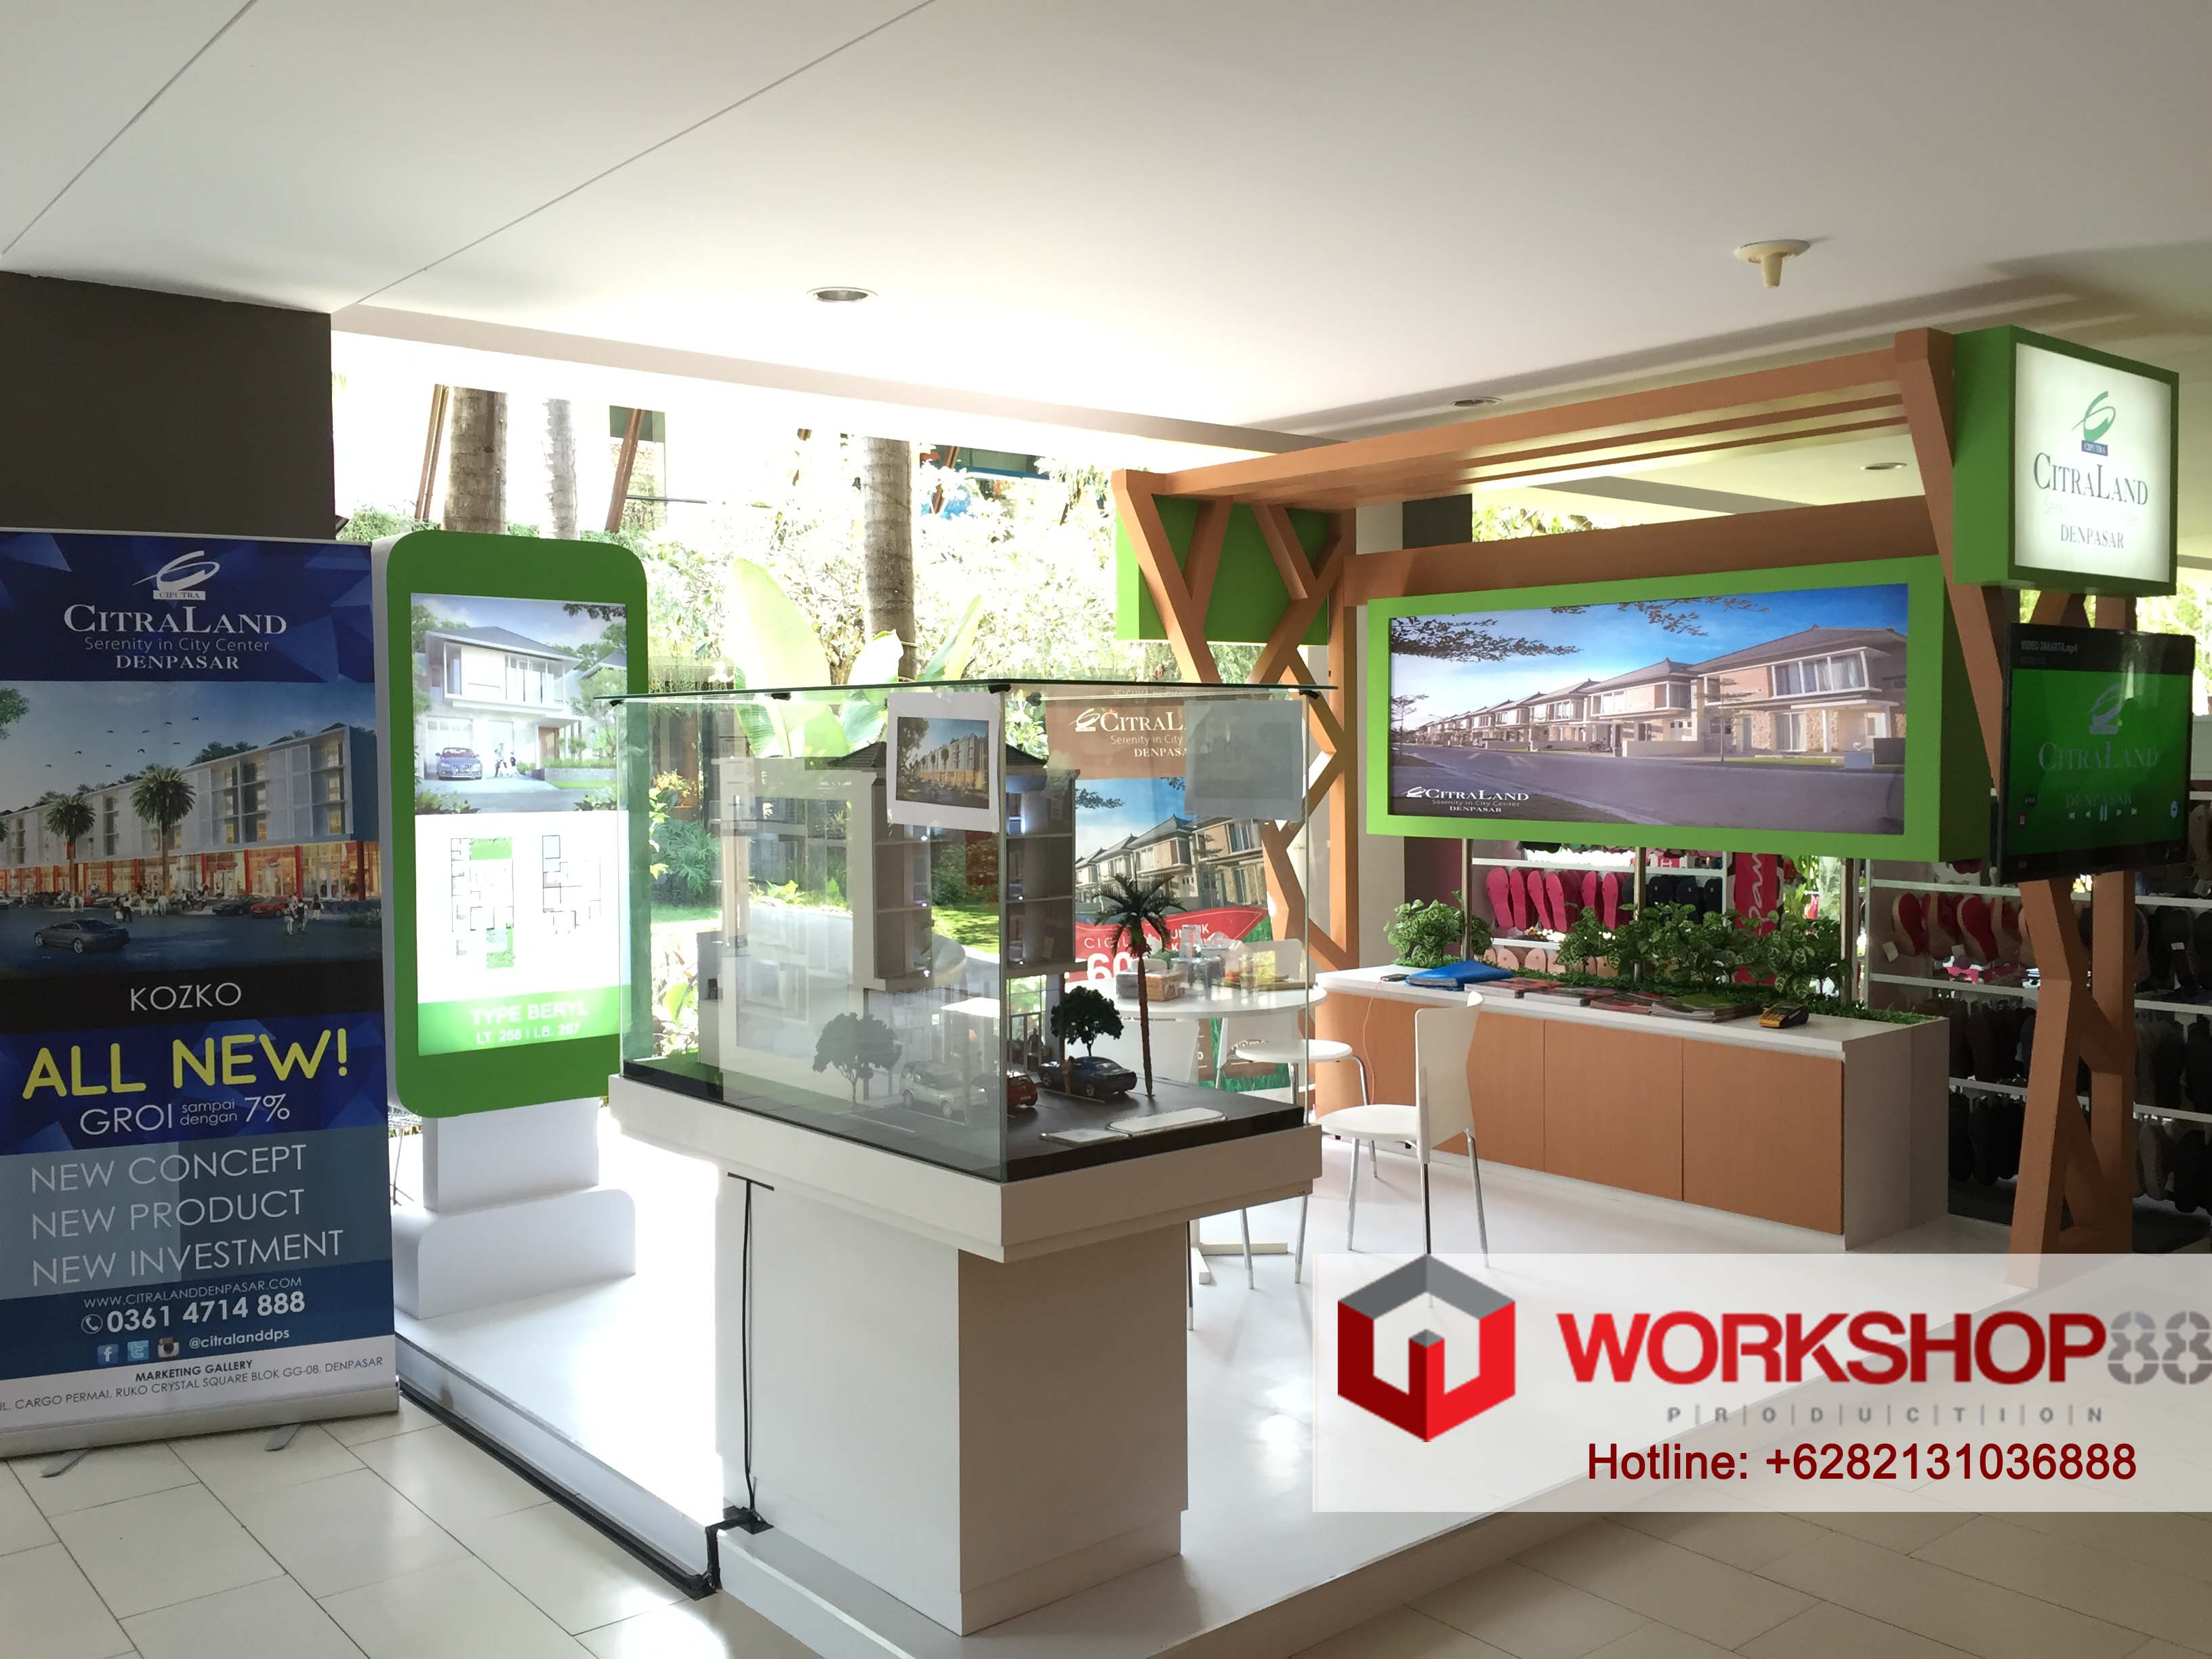 Property Exhibition Booth : Booth stand contractor citraland property exhibition at mall bali